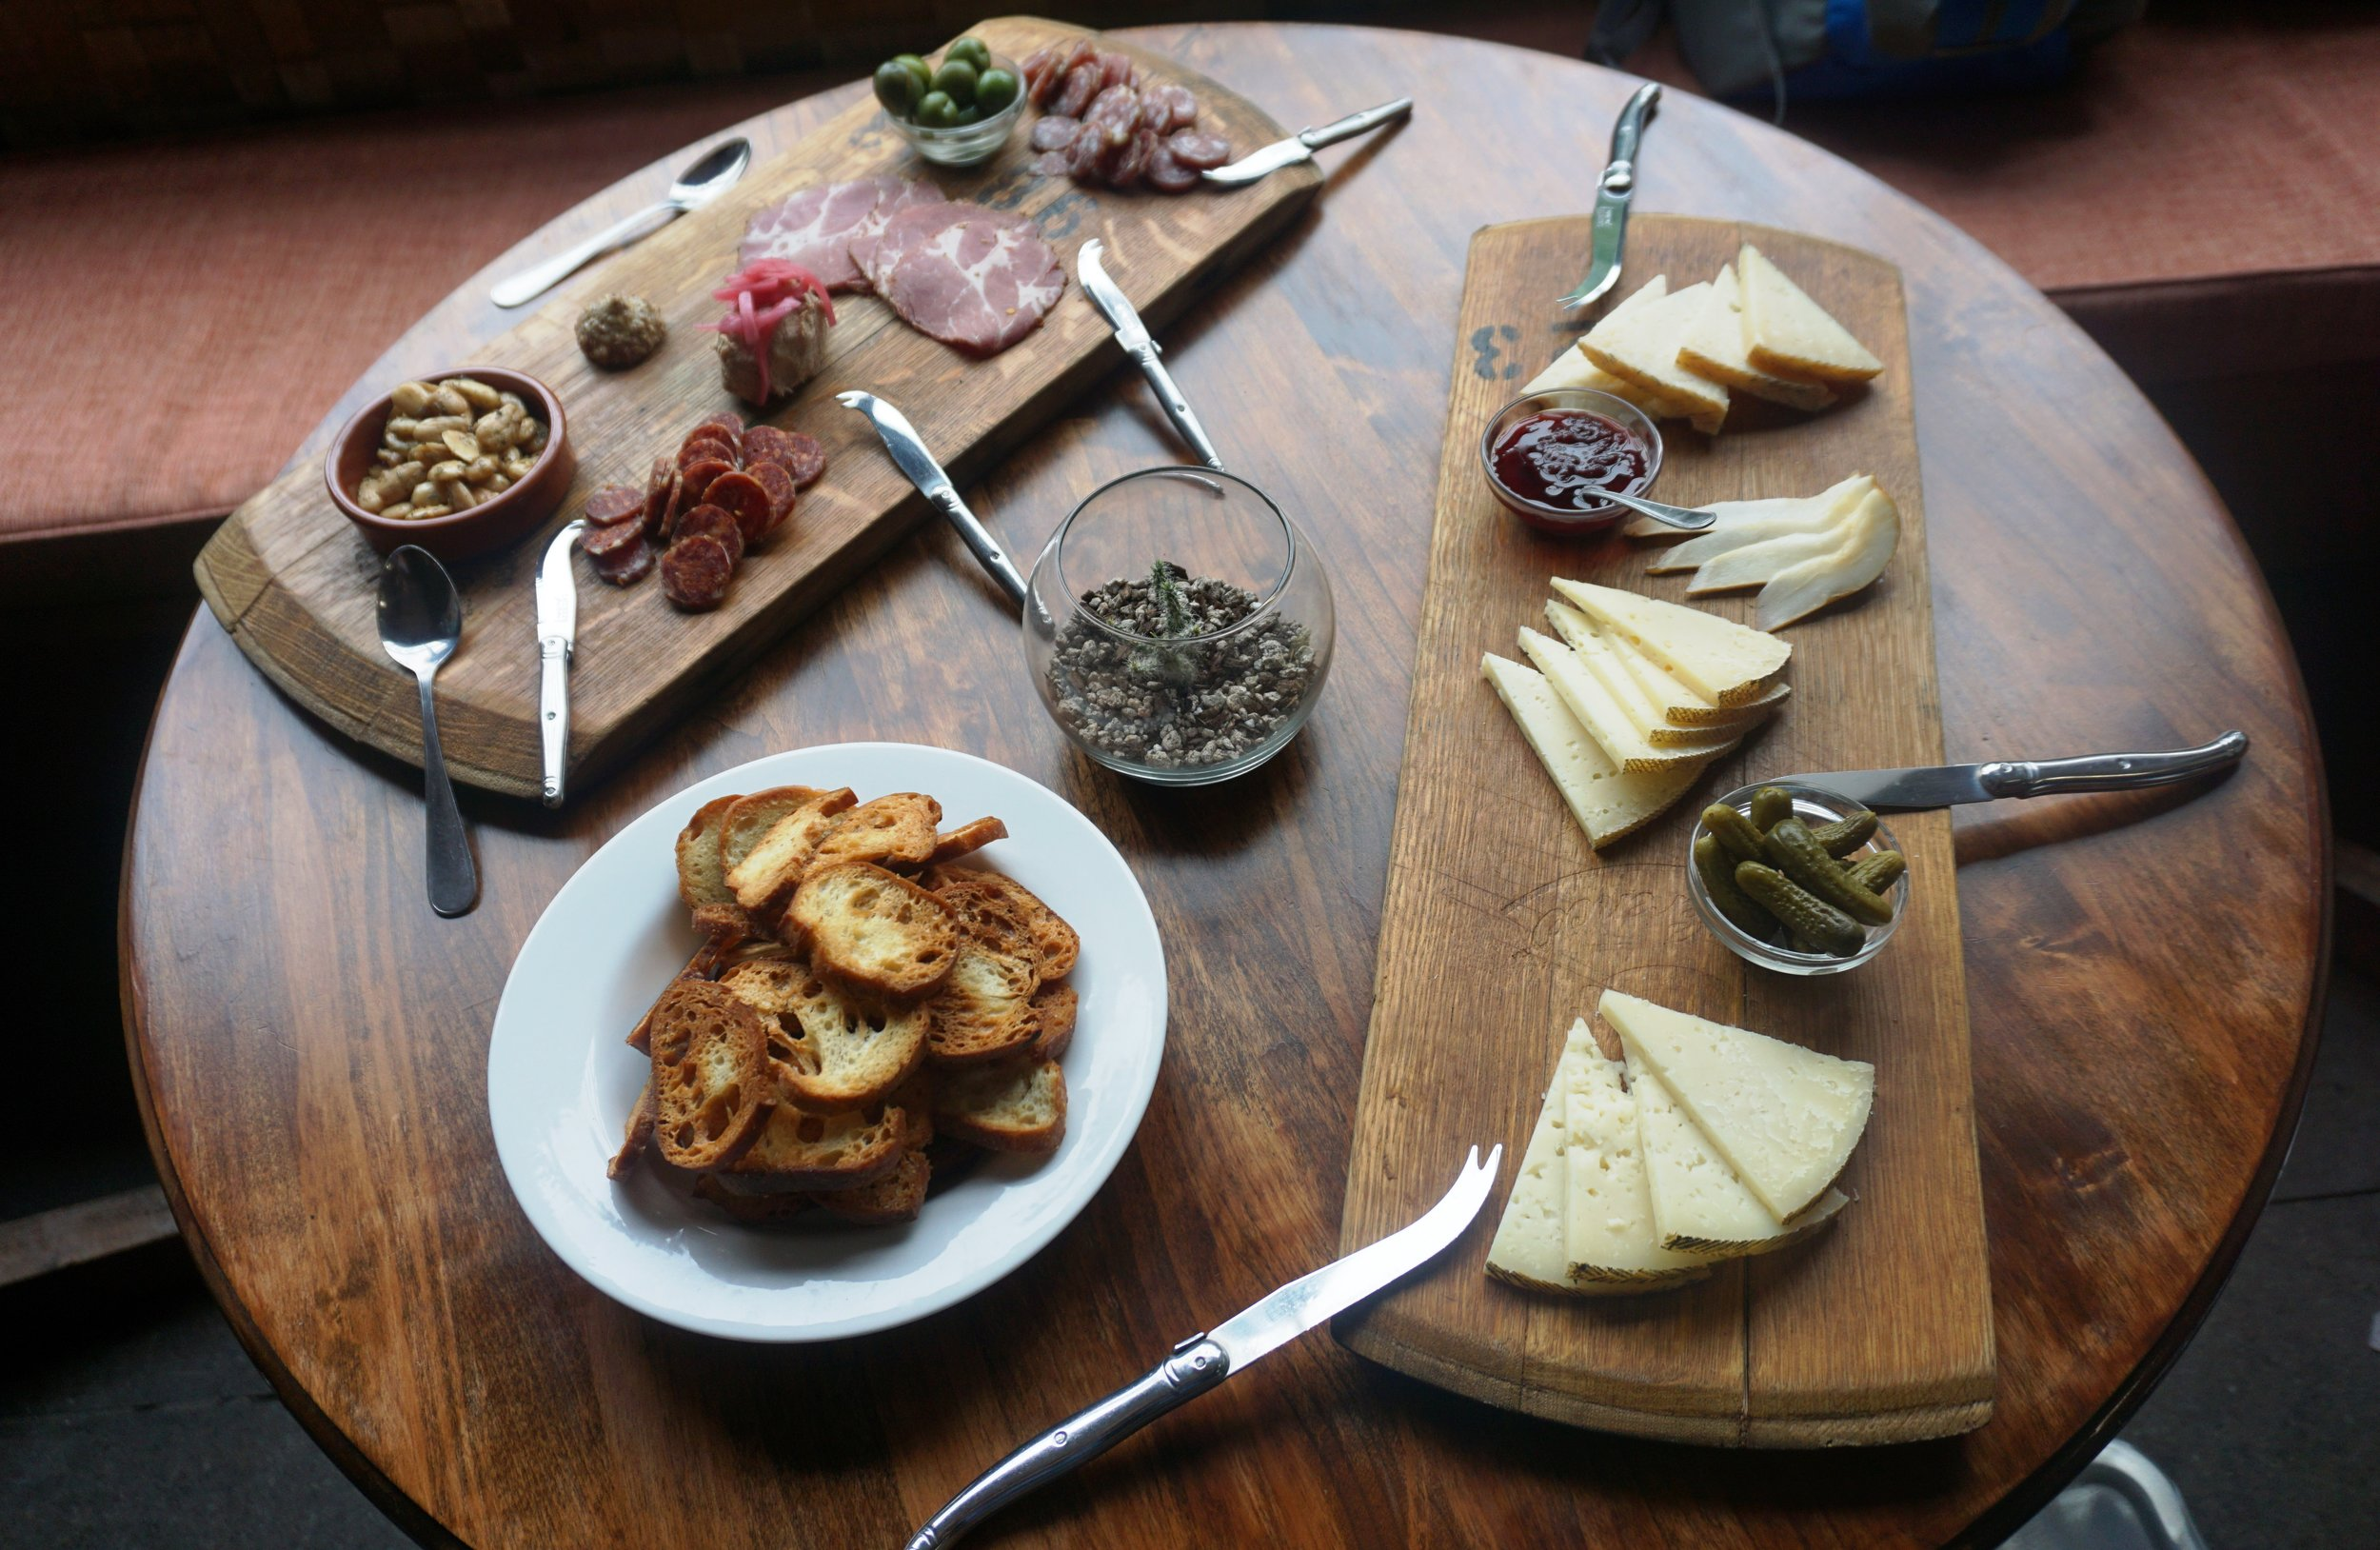 A sampling of Southeast Wine Collective's food menu includes Valencia almonds, house-made charcuterie, castelvetrano olives and cheeses sourced from nearby Cheese Bar. Viki Eierdam